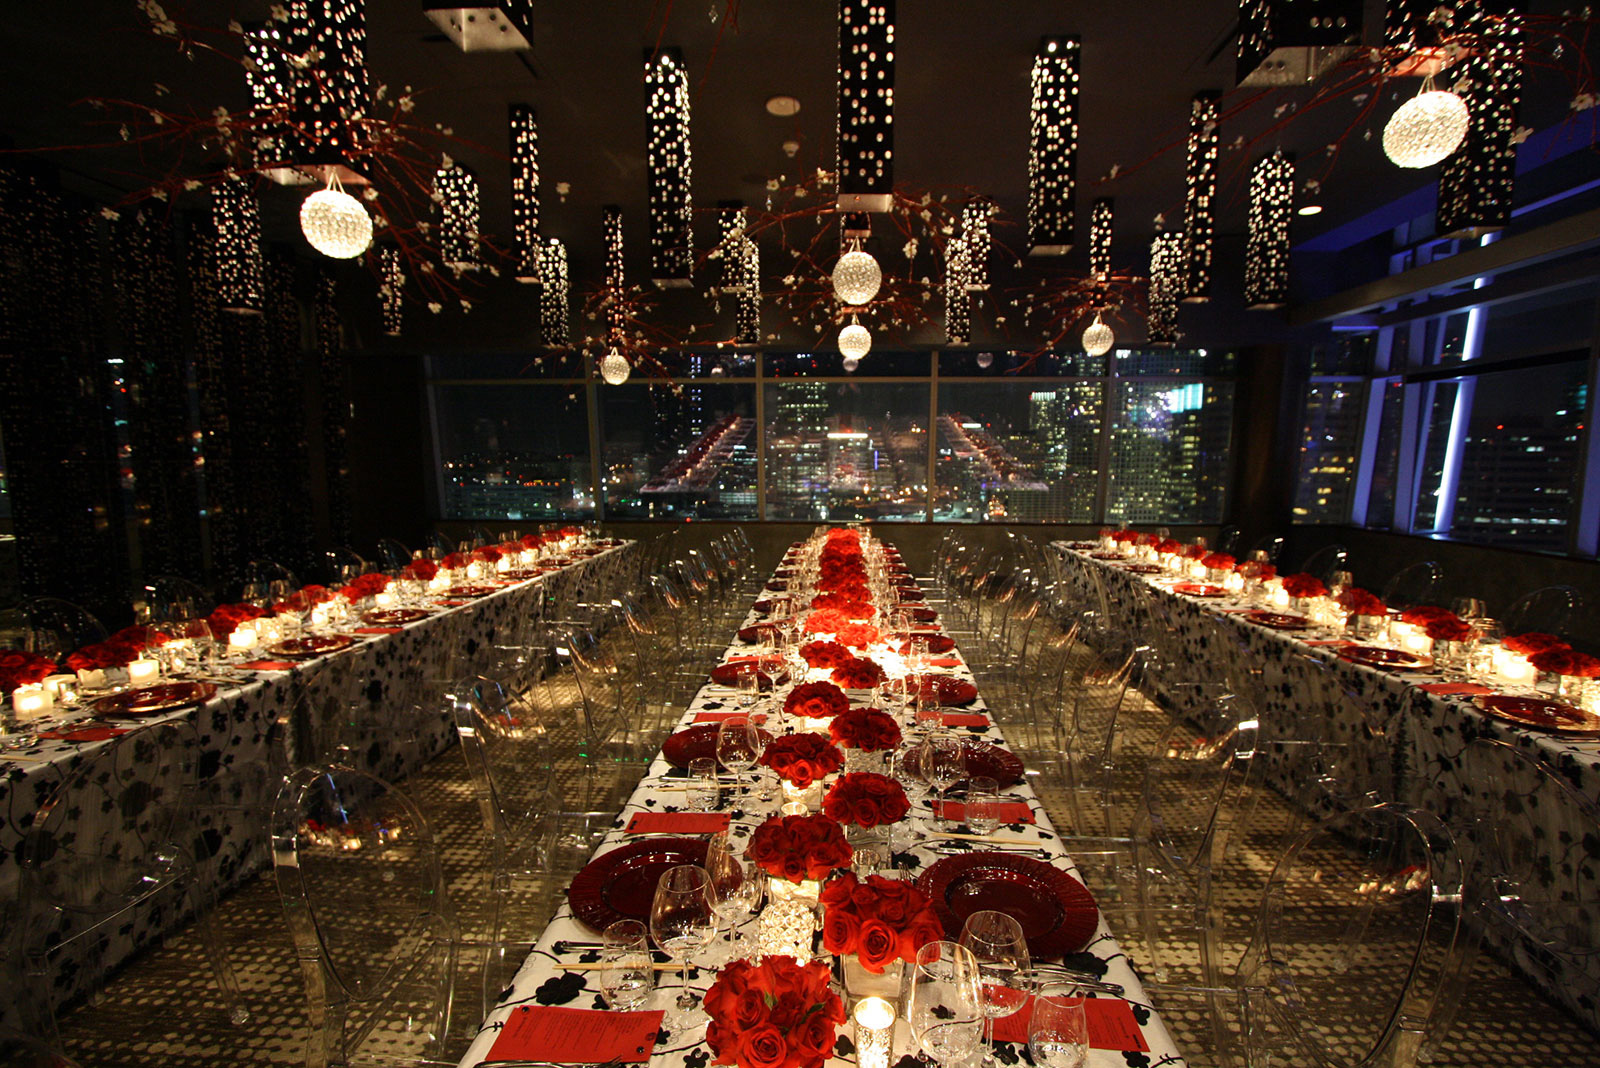 Dining space decorated with red roses at an AOO event